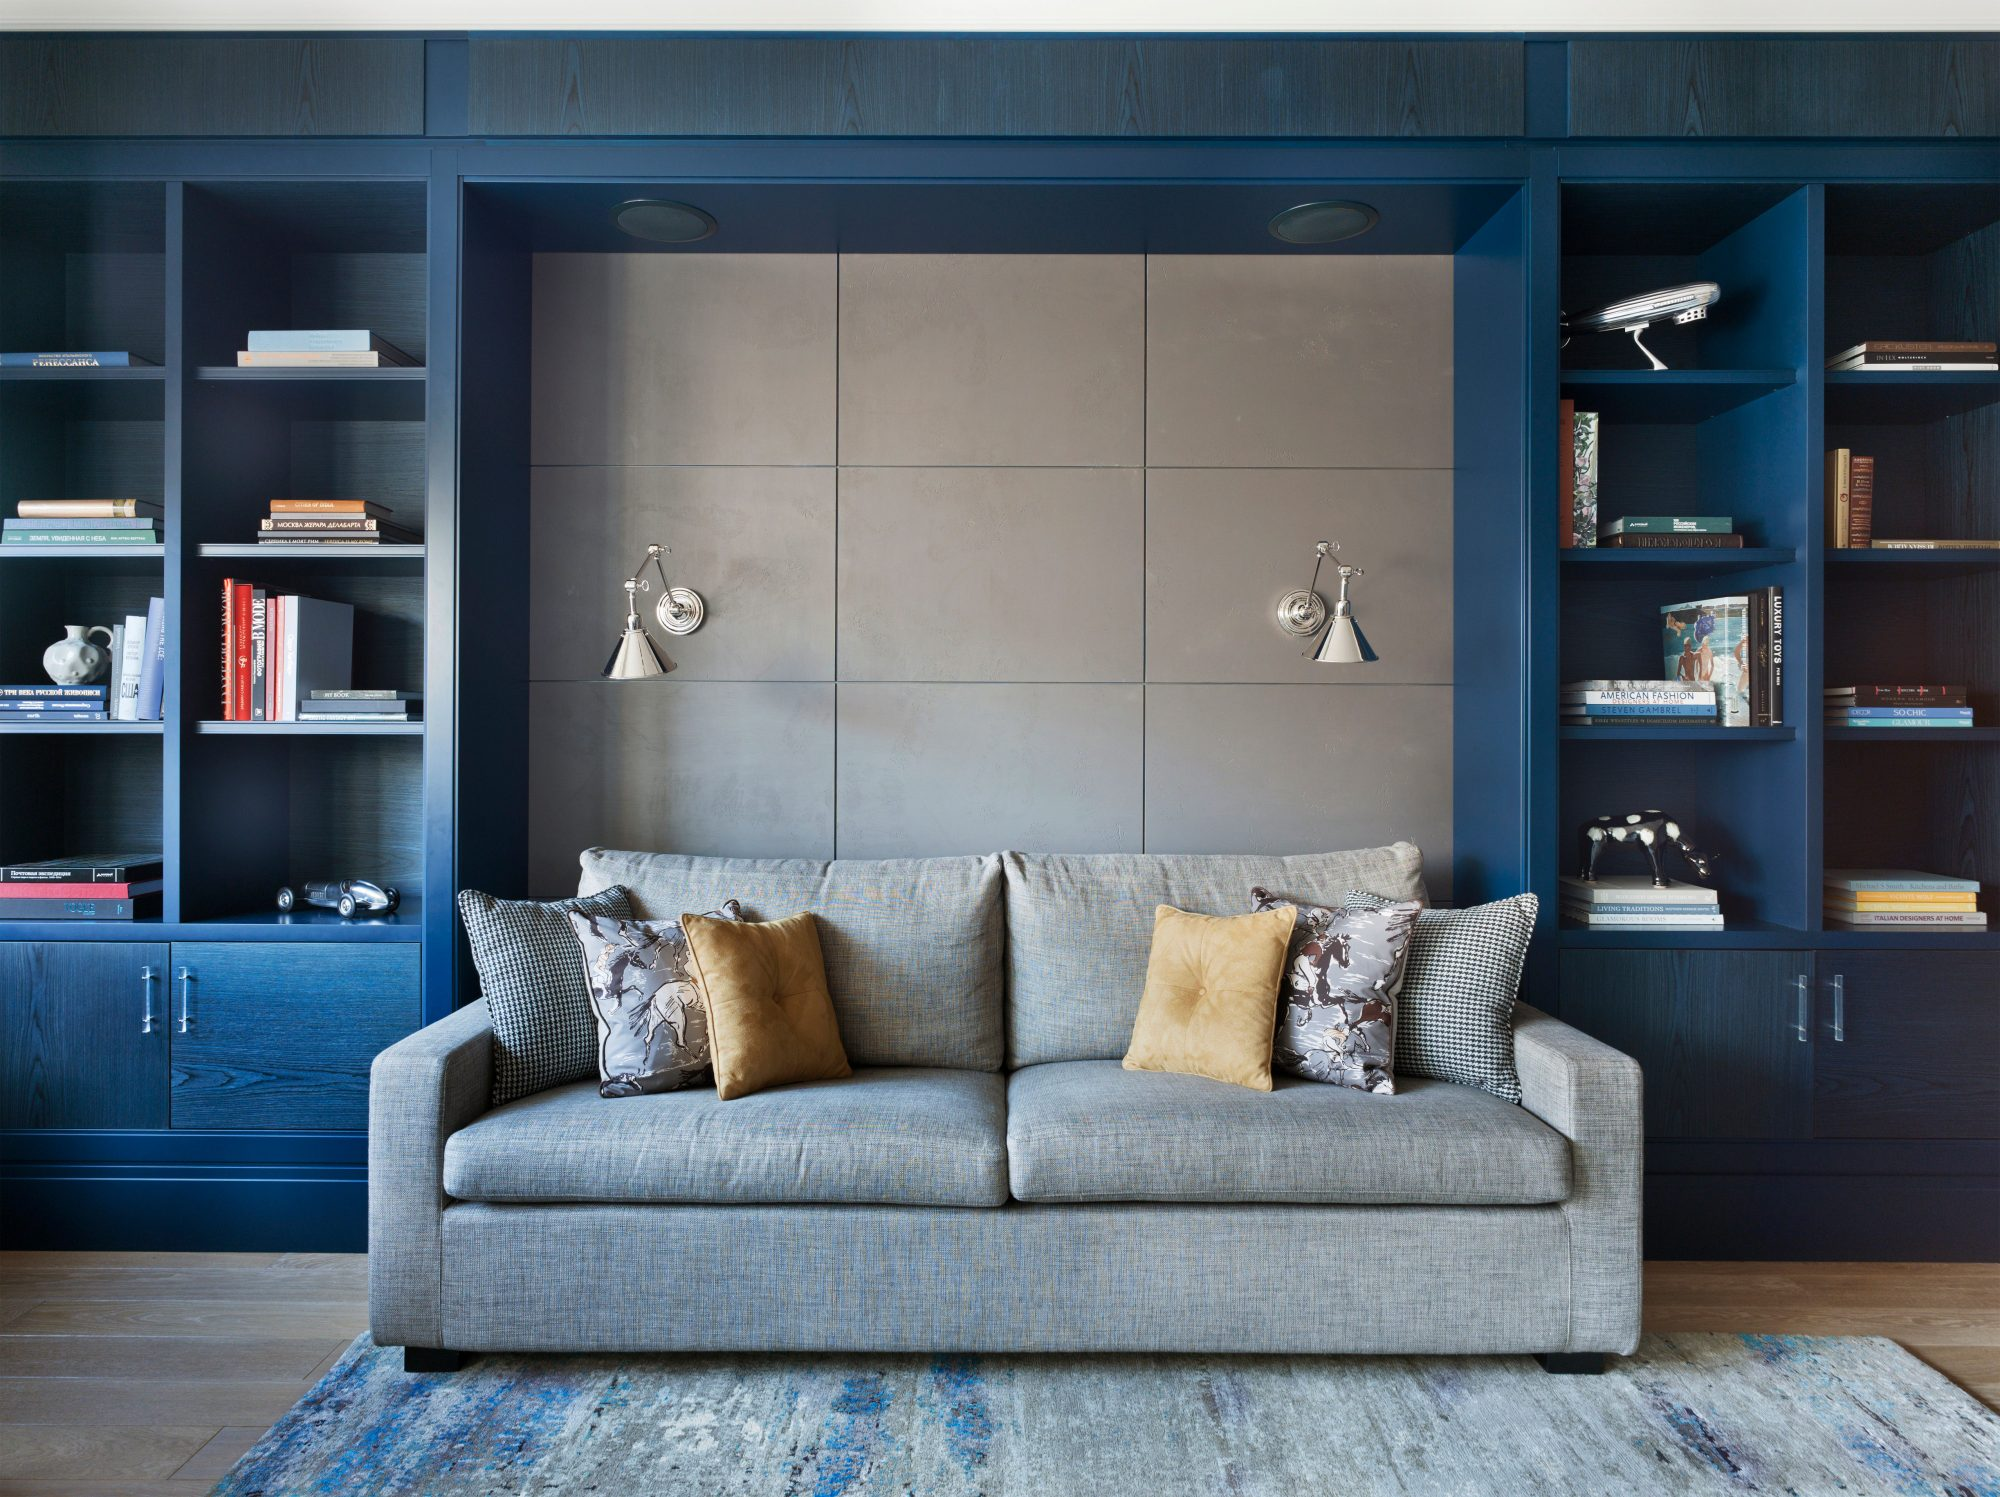 Couch Sitting in Front of Built-In Bookshelves